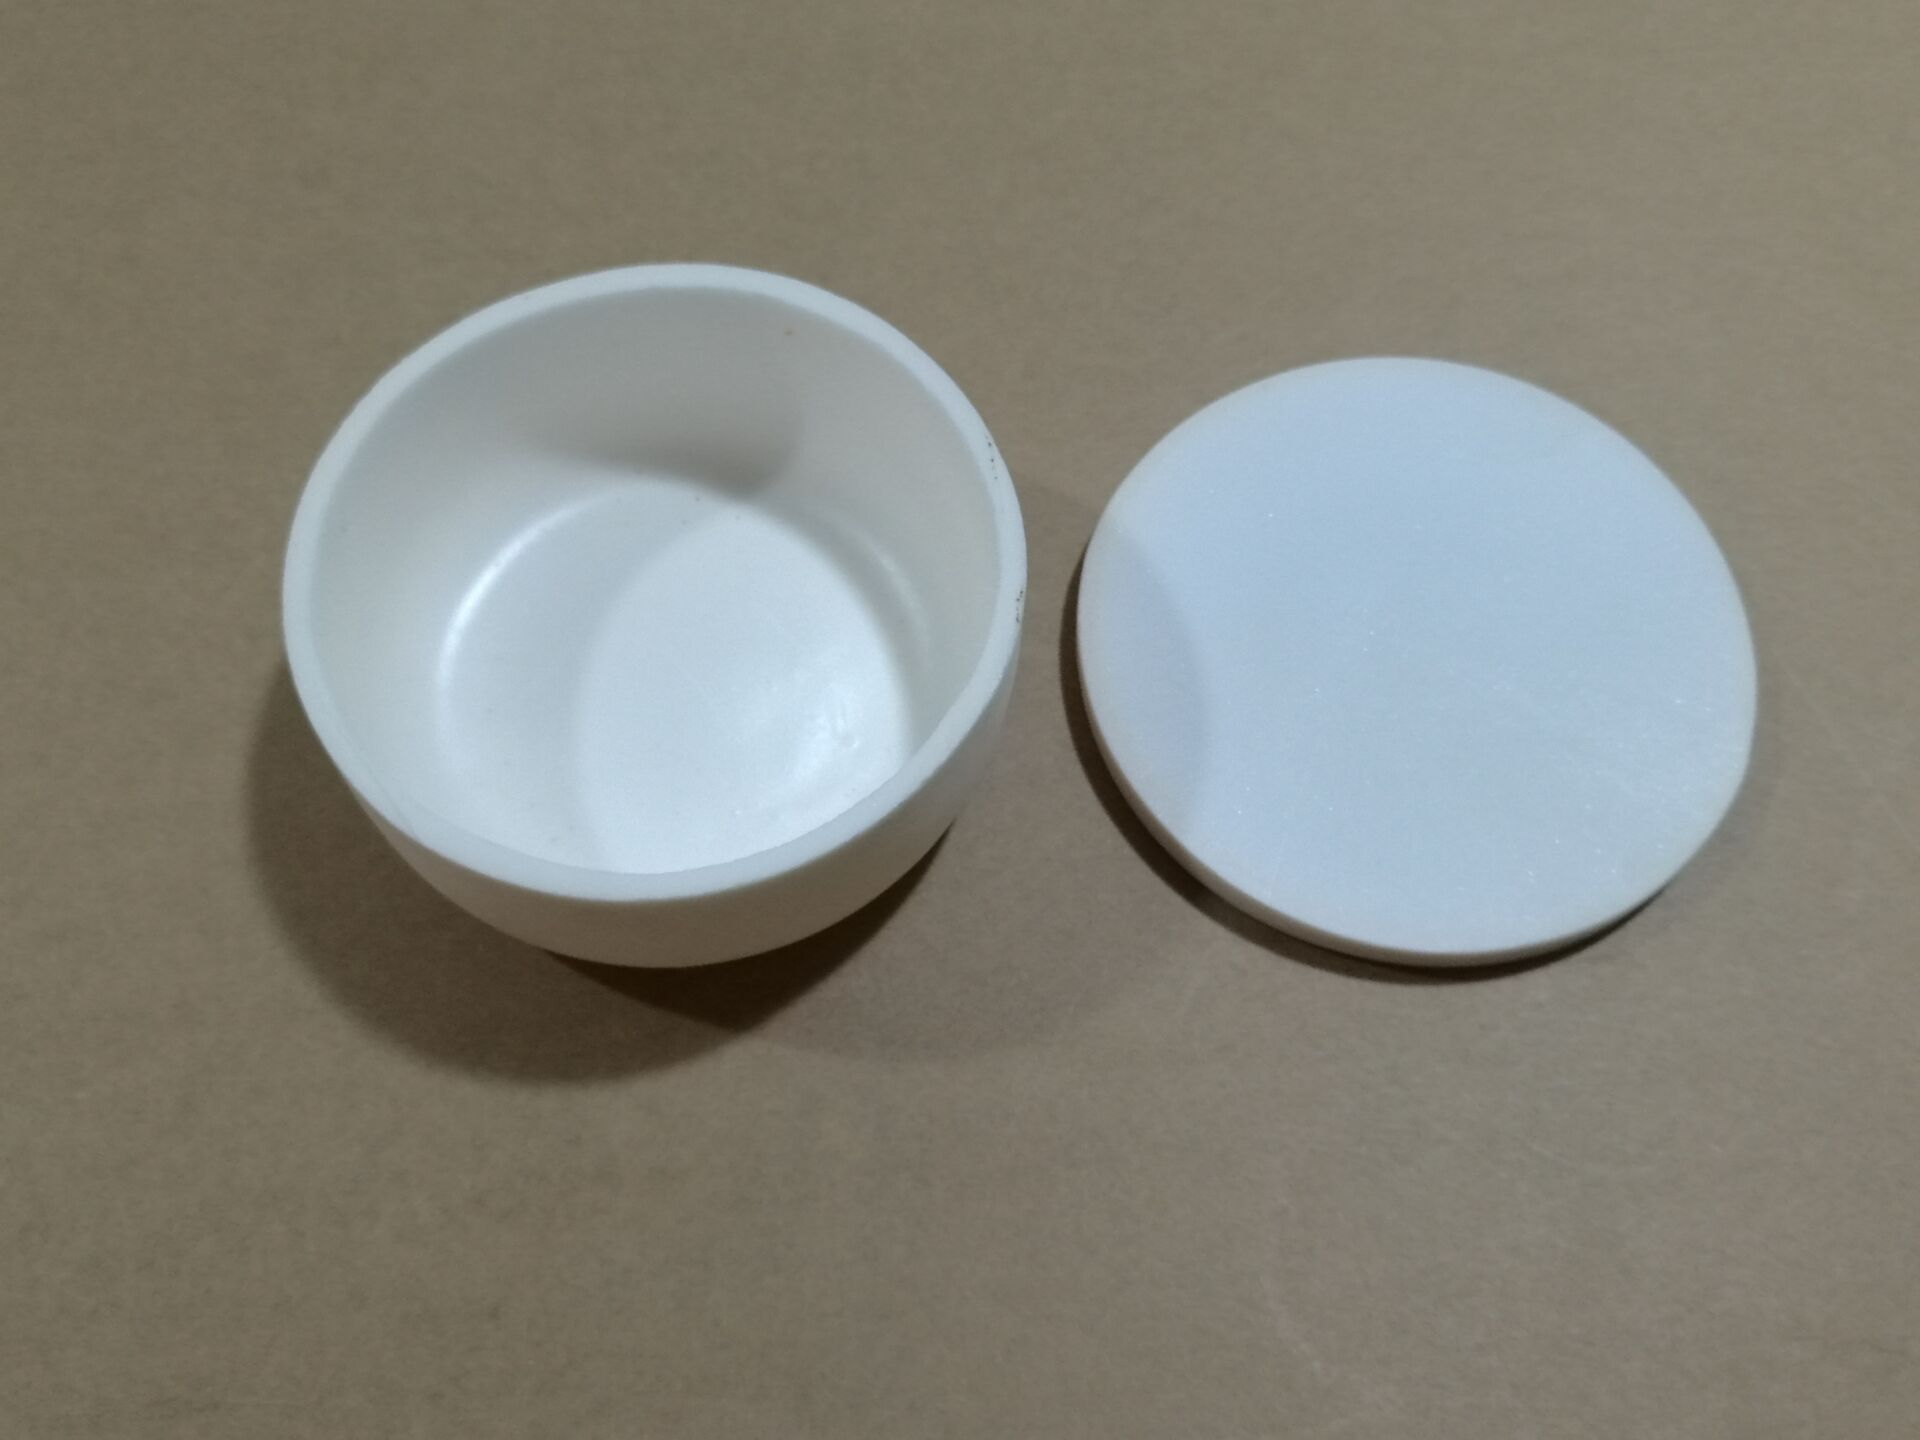 Sinter Bowl,90mm x35mm,With Lid,Flat side